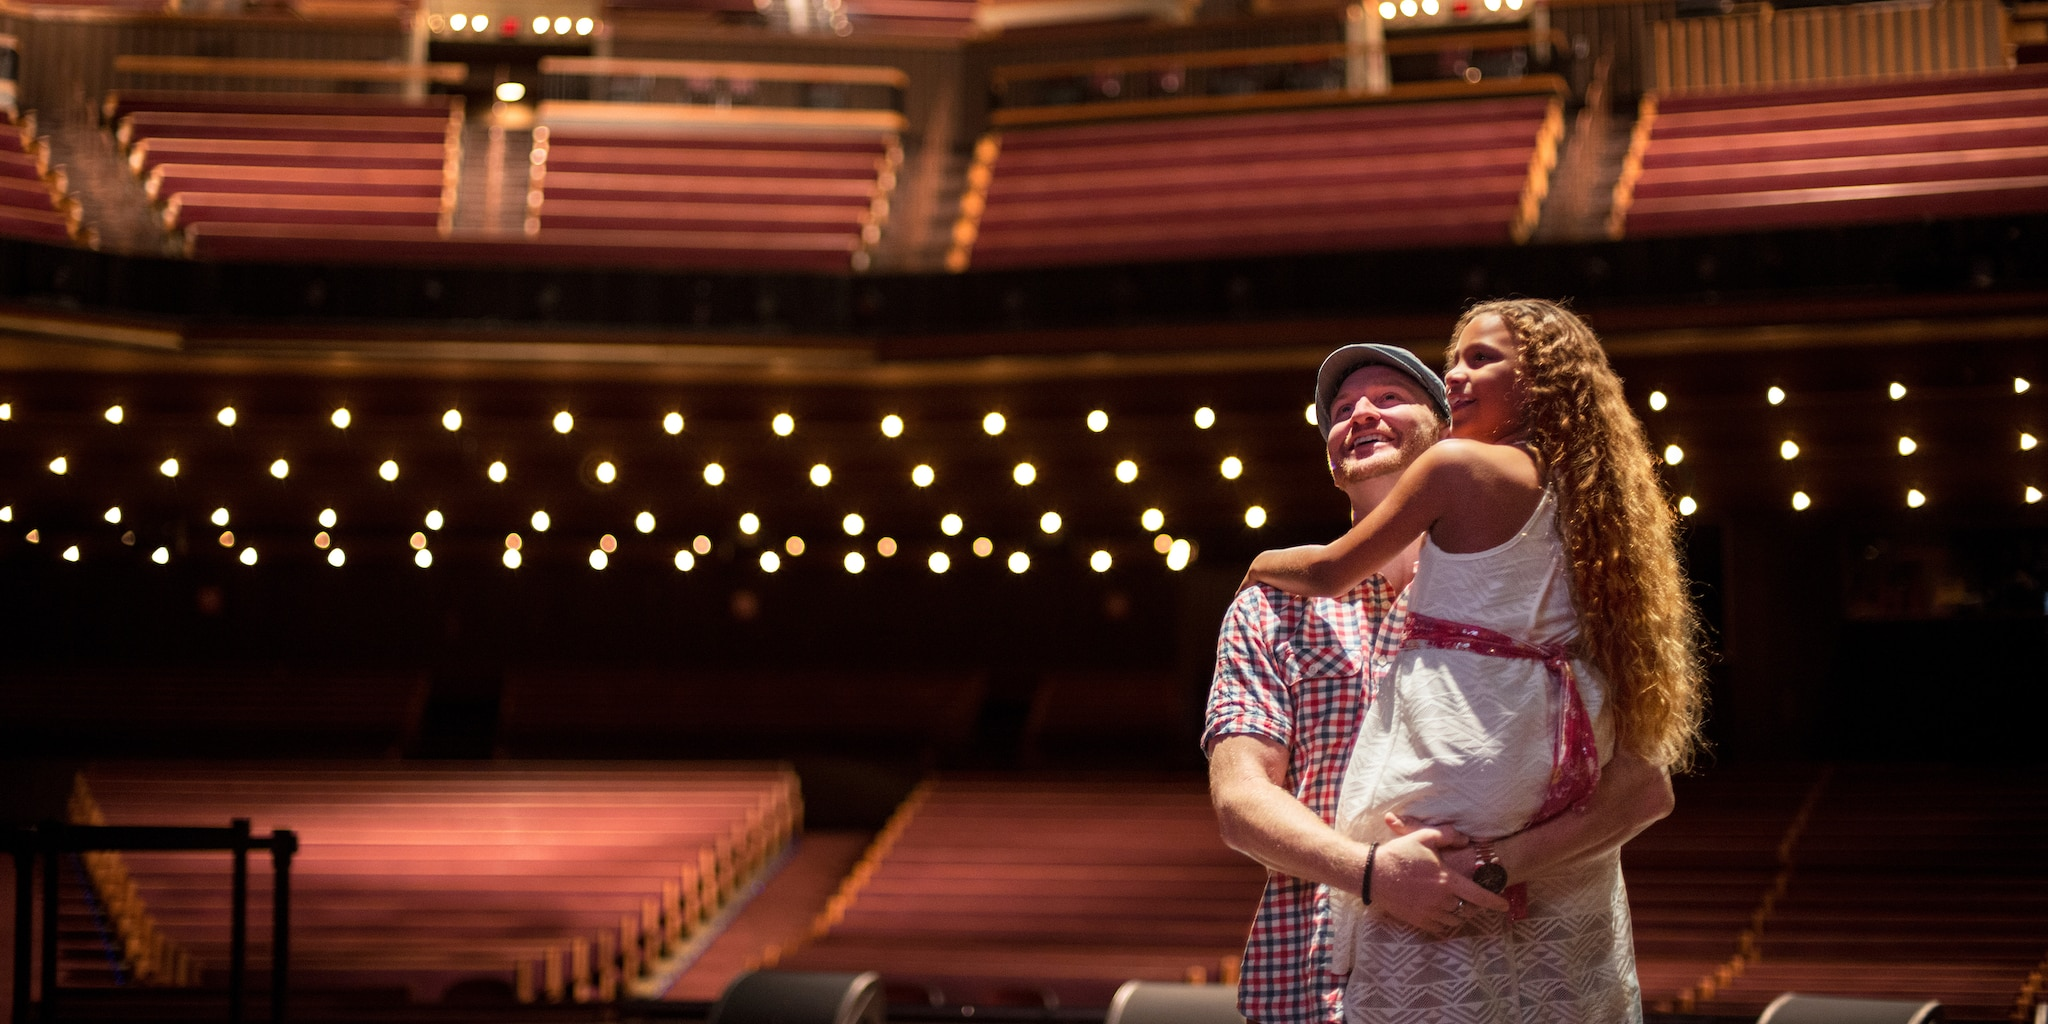 A father and daughter stand on stage at the Grand Ole Opry